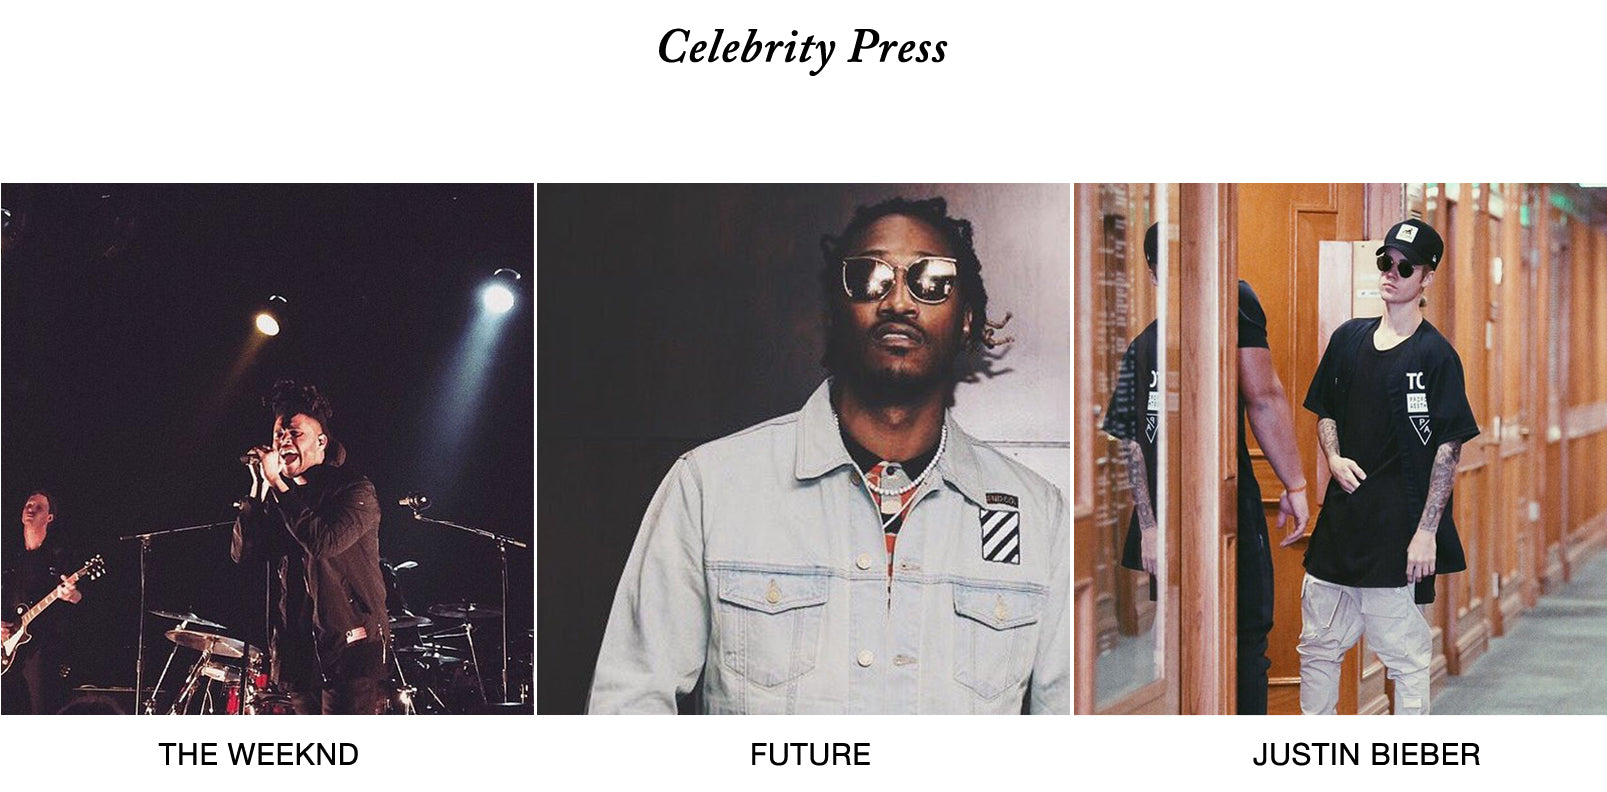 PROFOUND-AESTHETIC-WEEKND-FUTURE-HENDRIX-JUSTIN-BIEBER